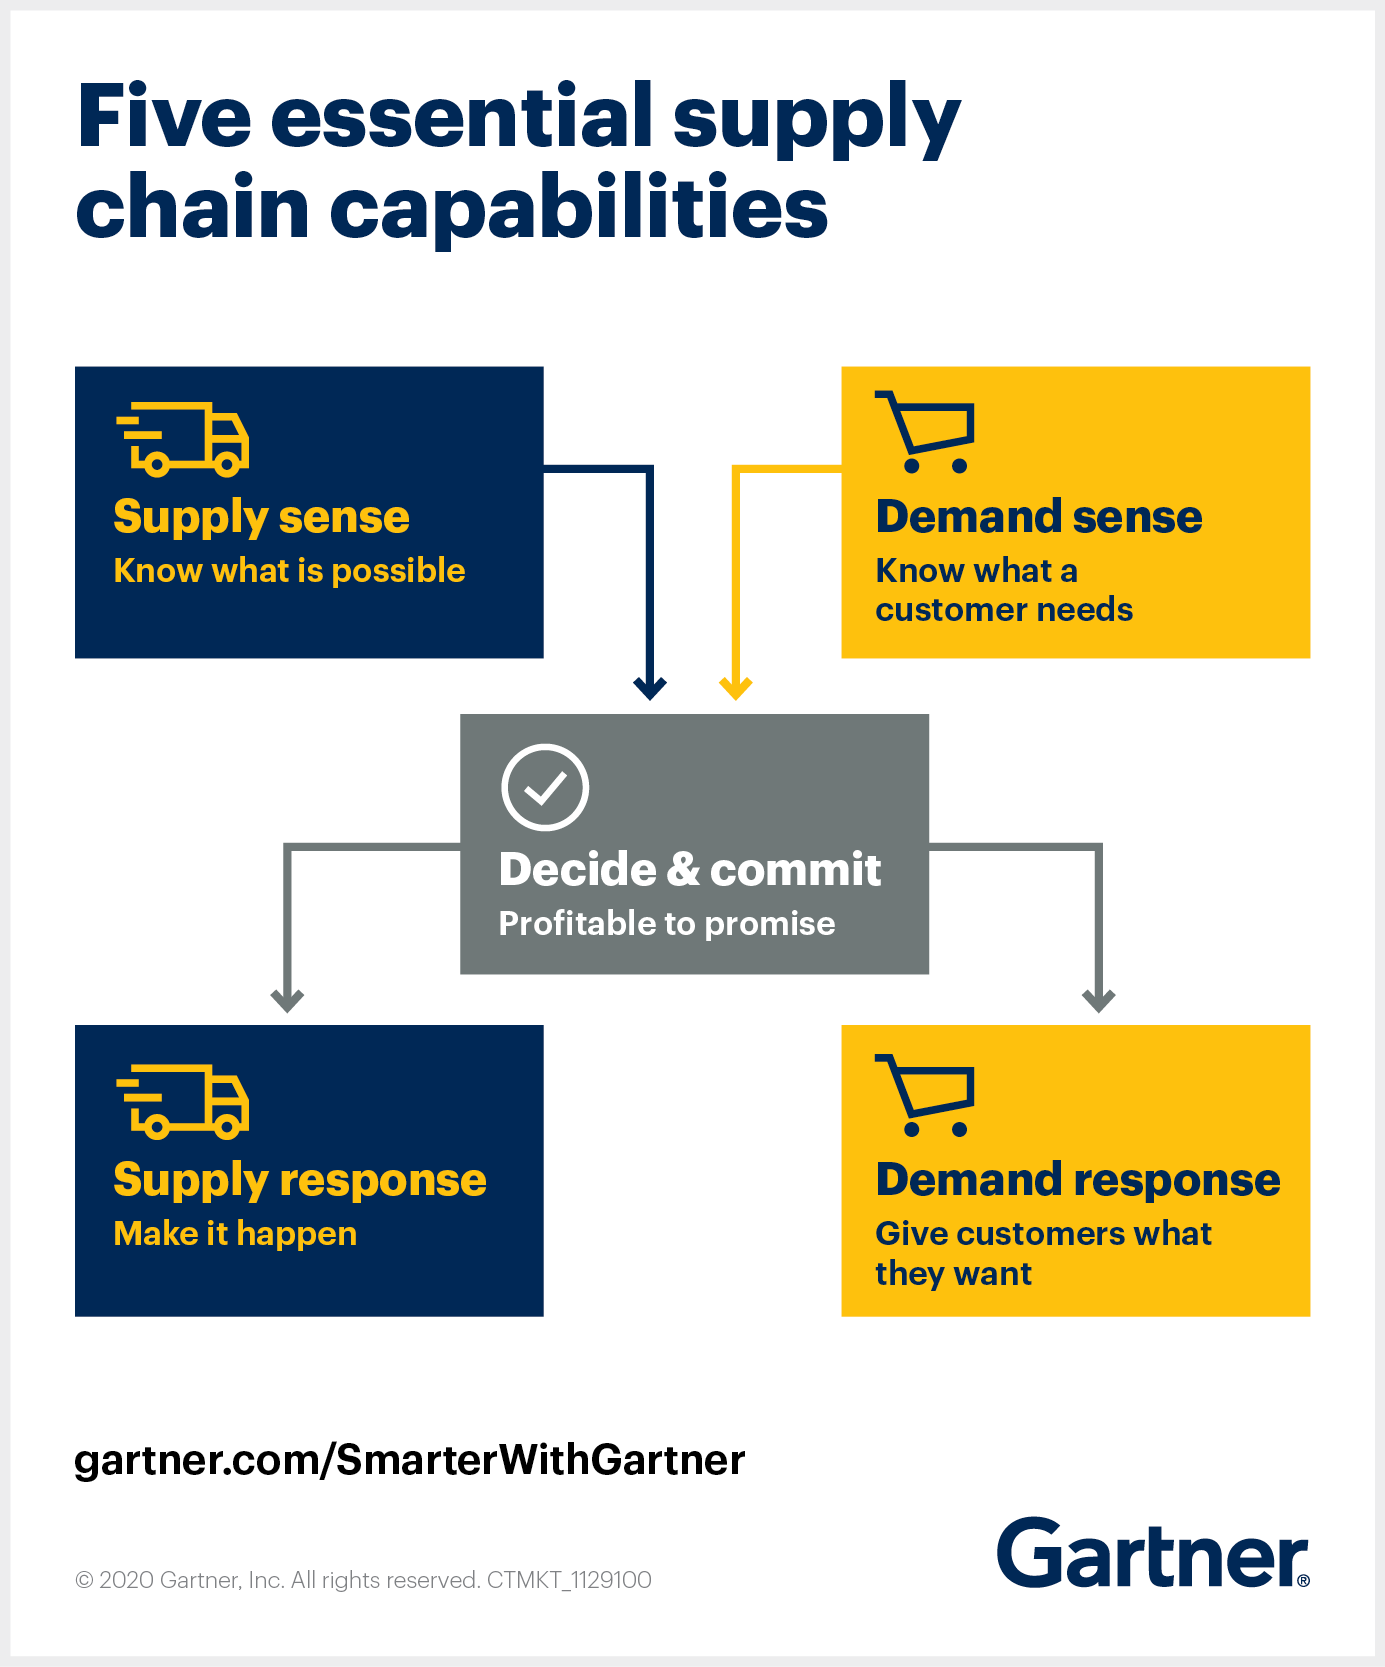 The Gartner Matrix for Supply Chain Strategy covers 5 essential capabilities for supply chain leaders to implement.